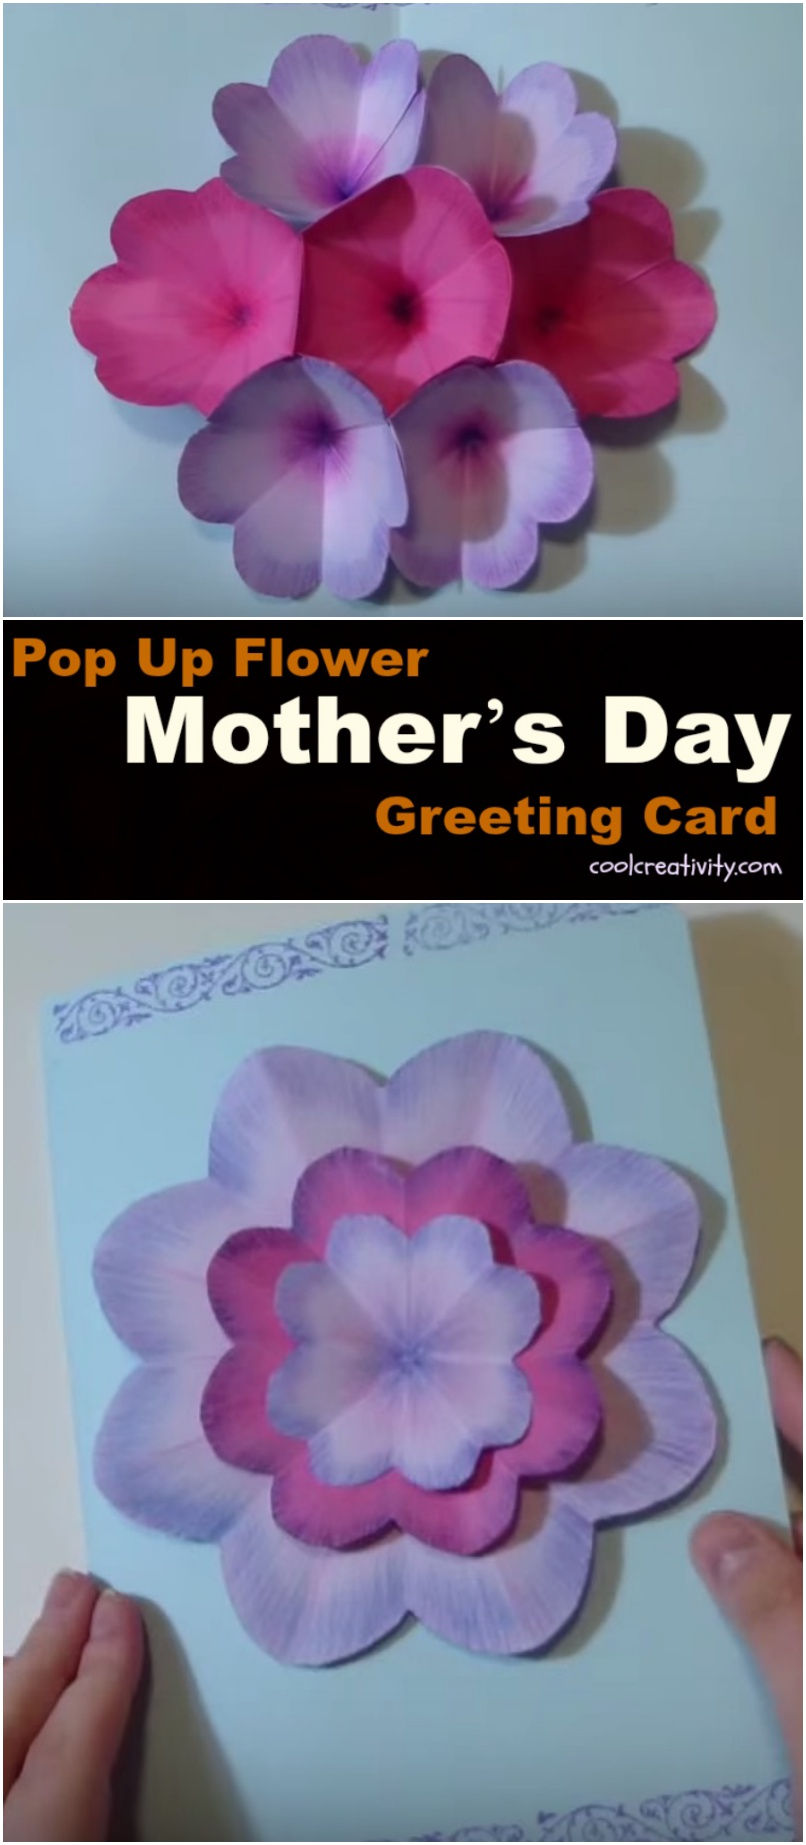 Creative DIY Mother's Day Pop Up Flower Card